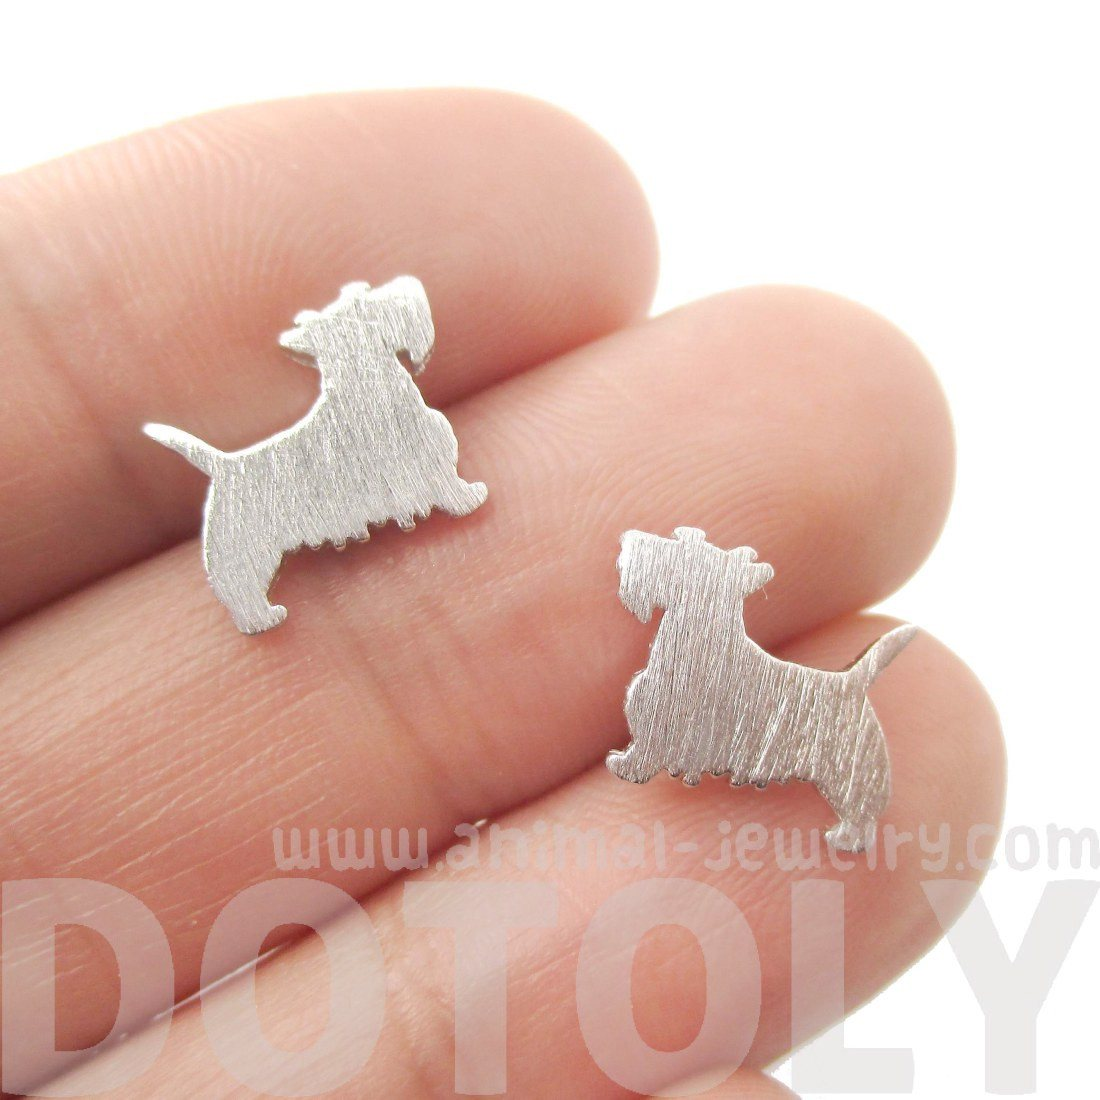 West Highland Terrier Silhouette Stud Earrings in Silver